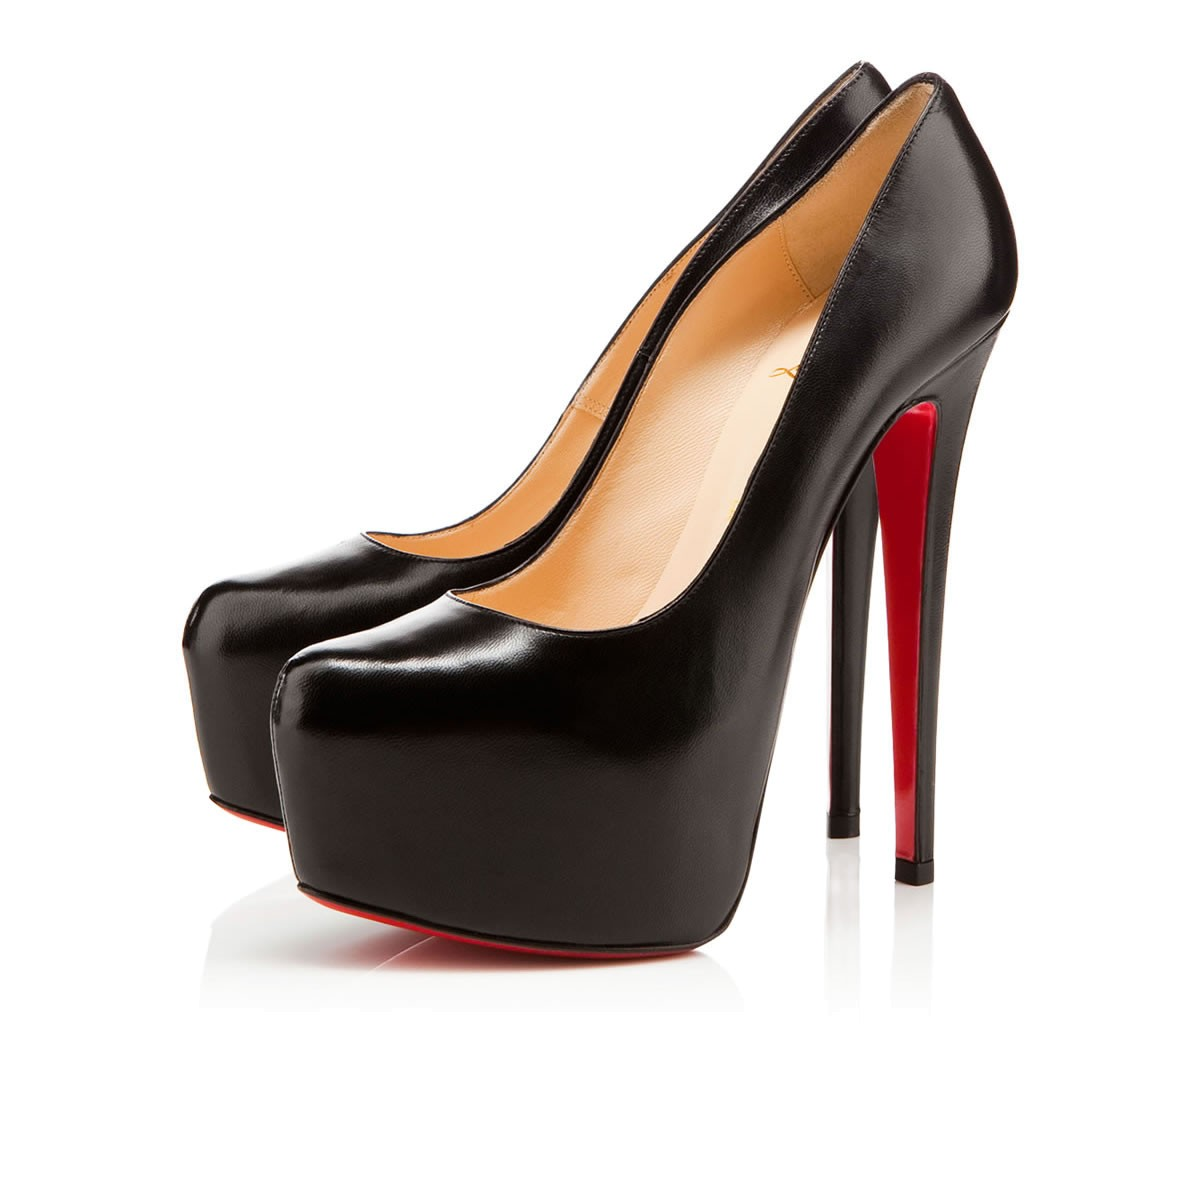 huge selection of cf347 0631c Christian Louboutin Daffodile 160mm Kid Leather - Reed ...